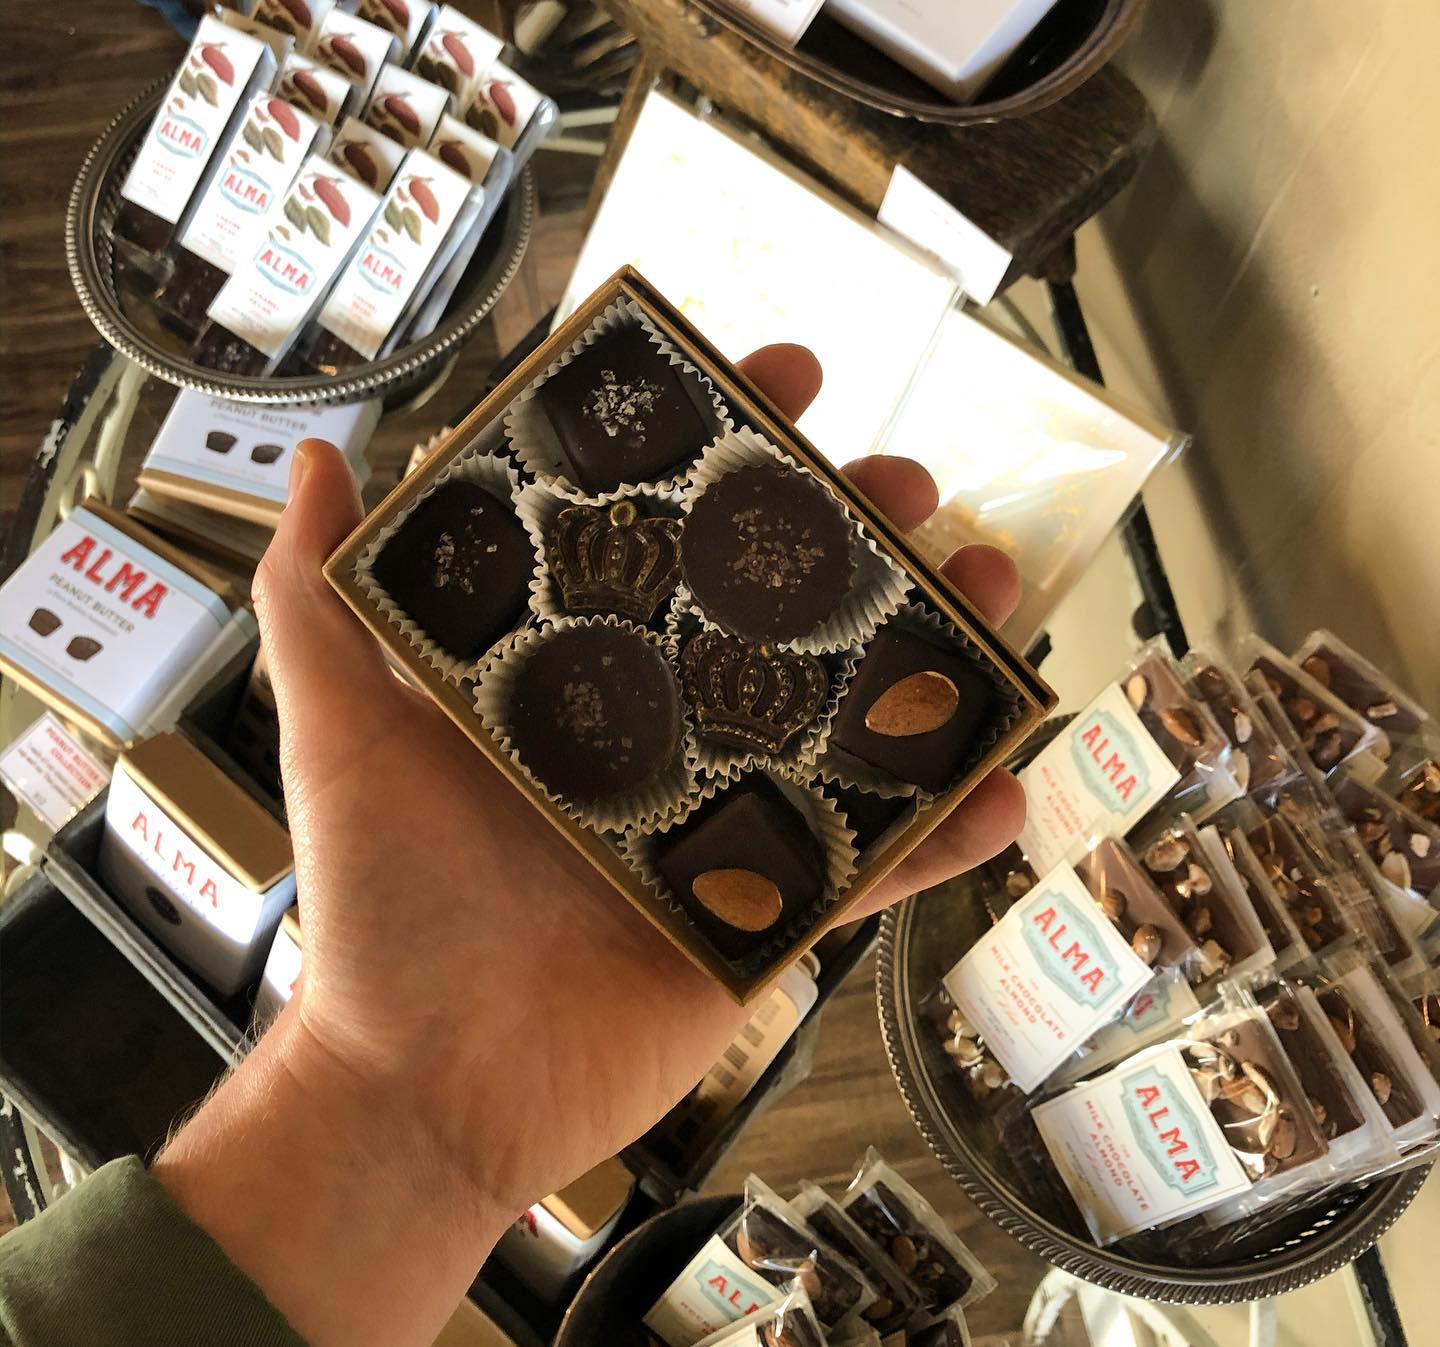 A hand holds up an open box of chocolate bon bons; in the background sit bowls containing Alma chocolate bars.